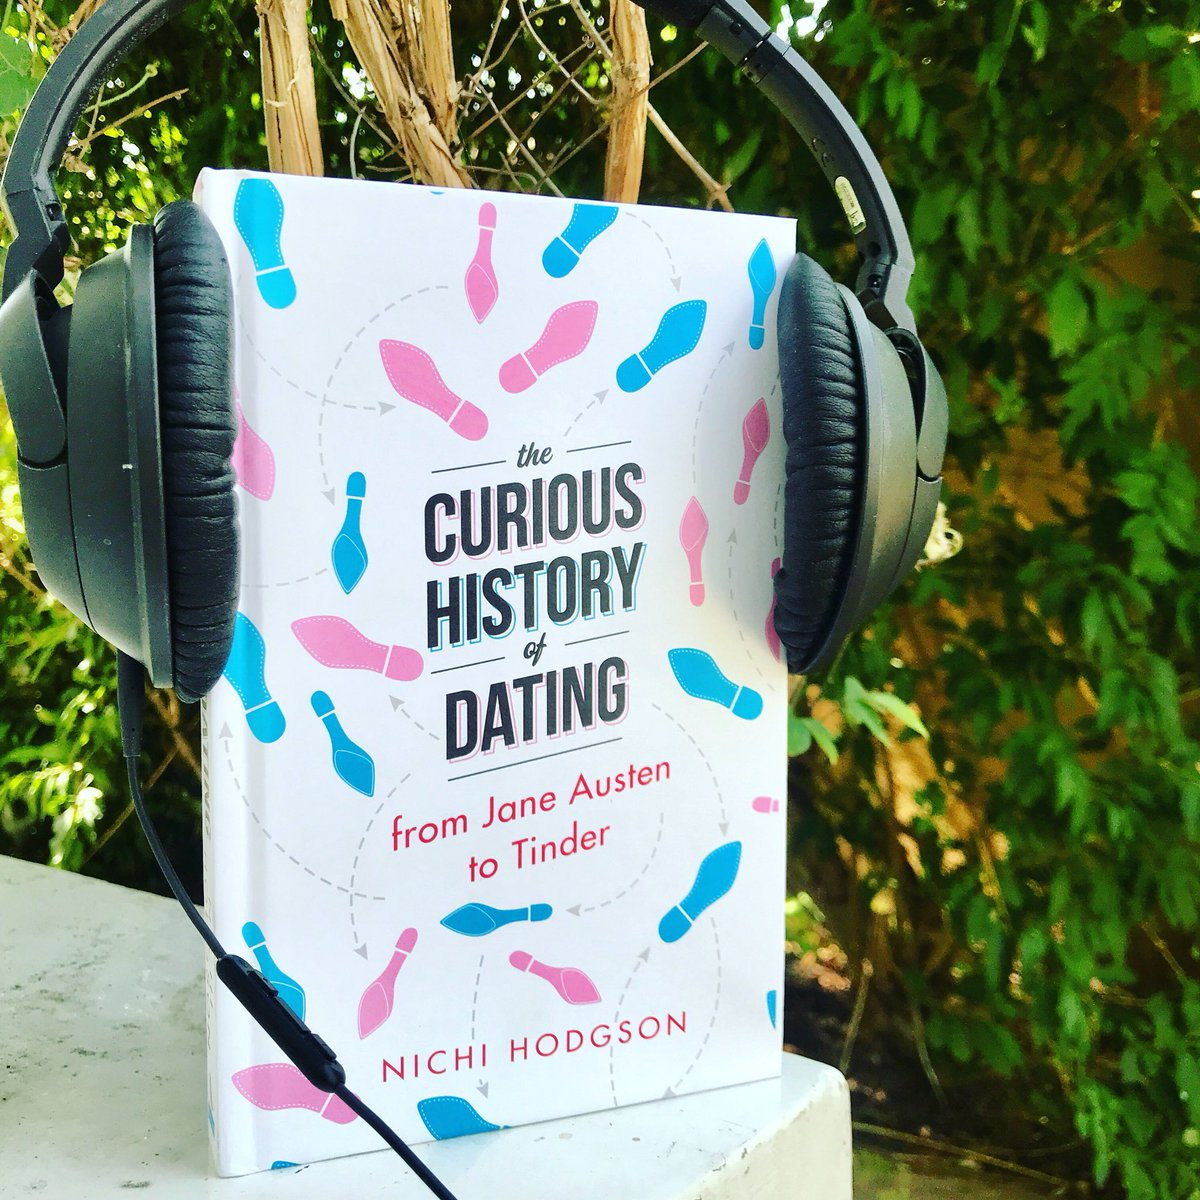 Curious history of dating